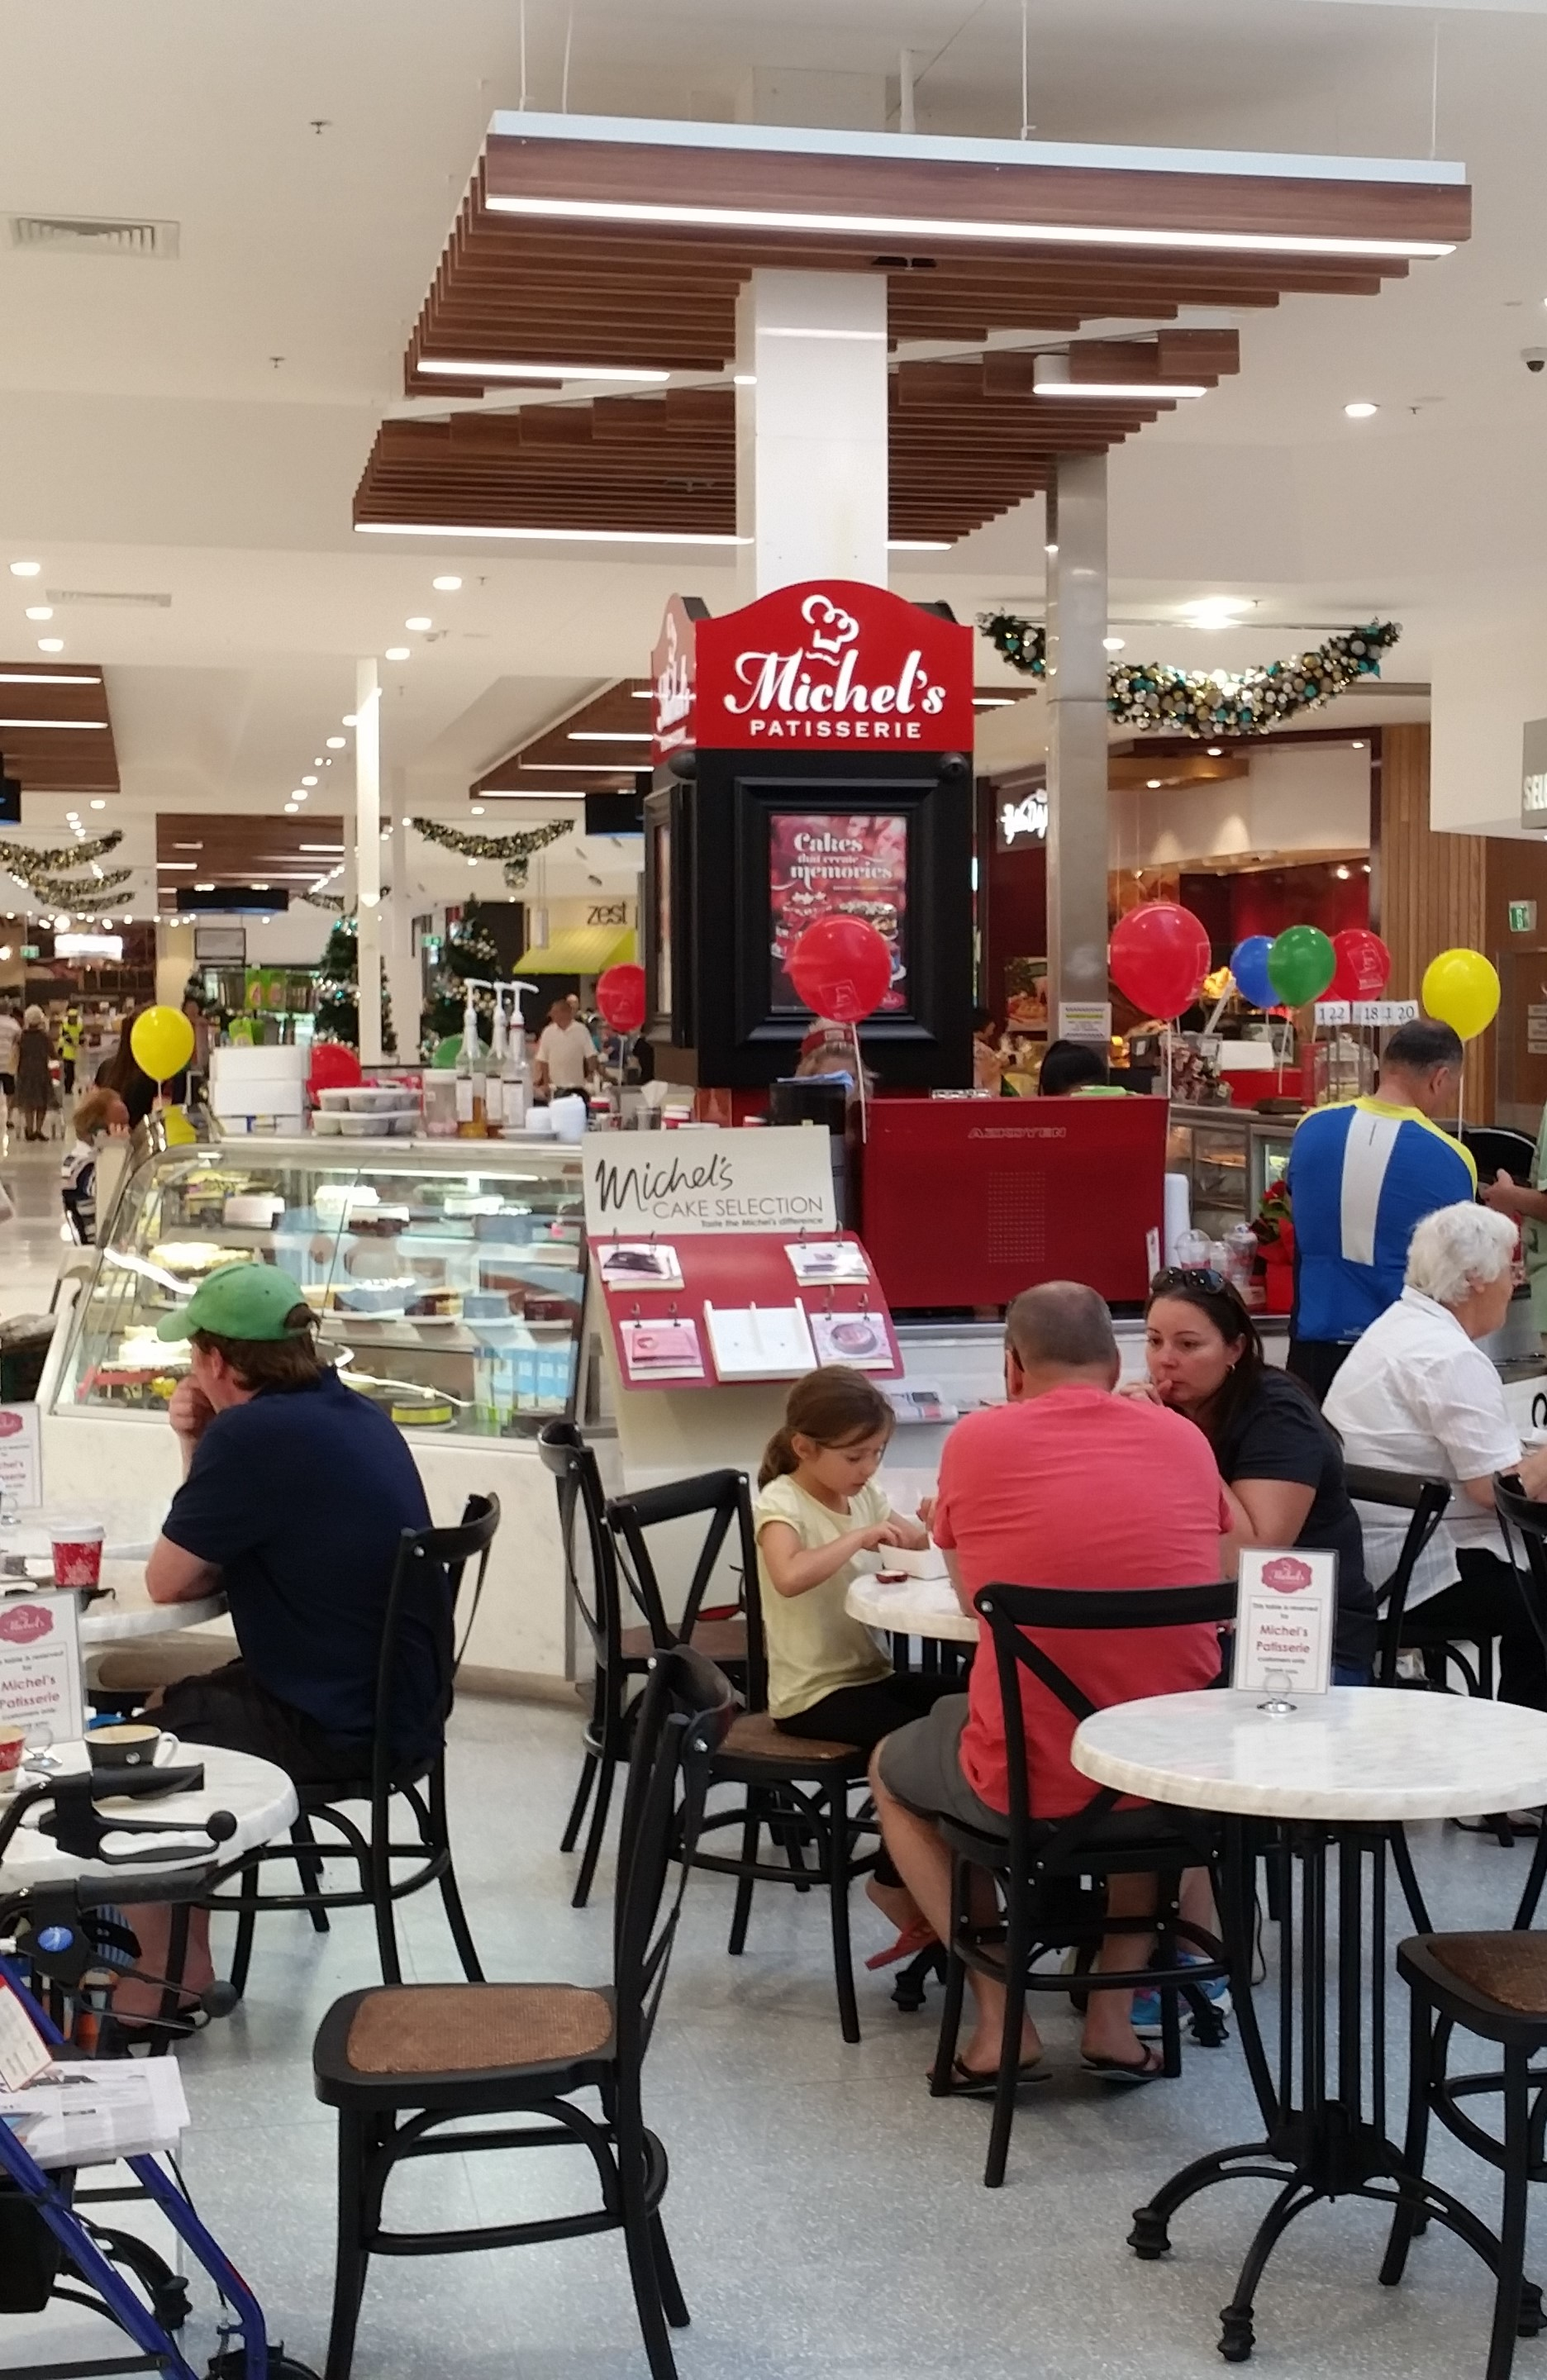 Michels Patisserie kellyville Dec 2015 (7)